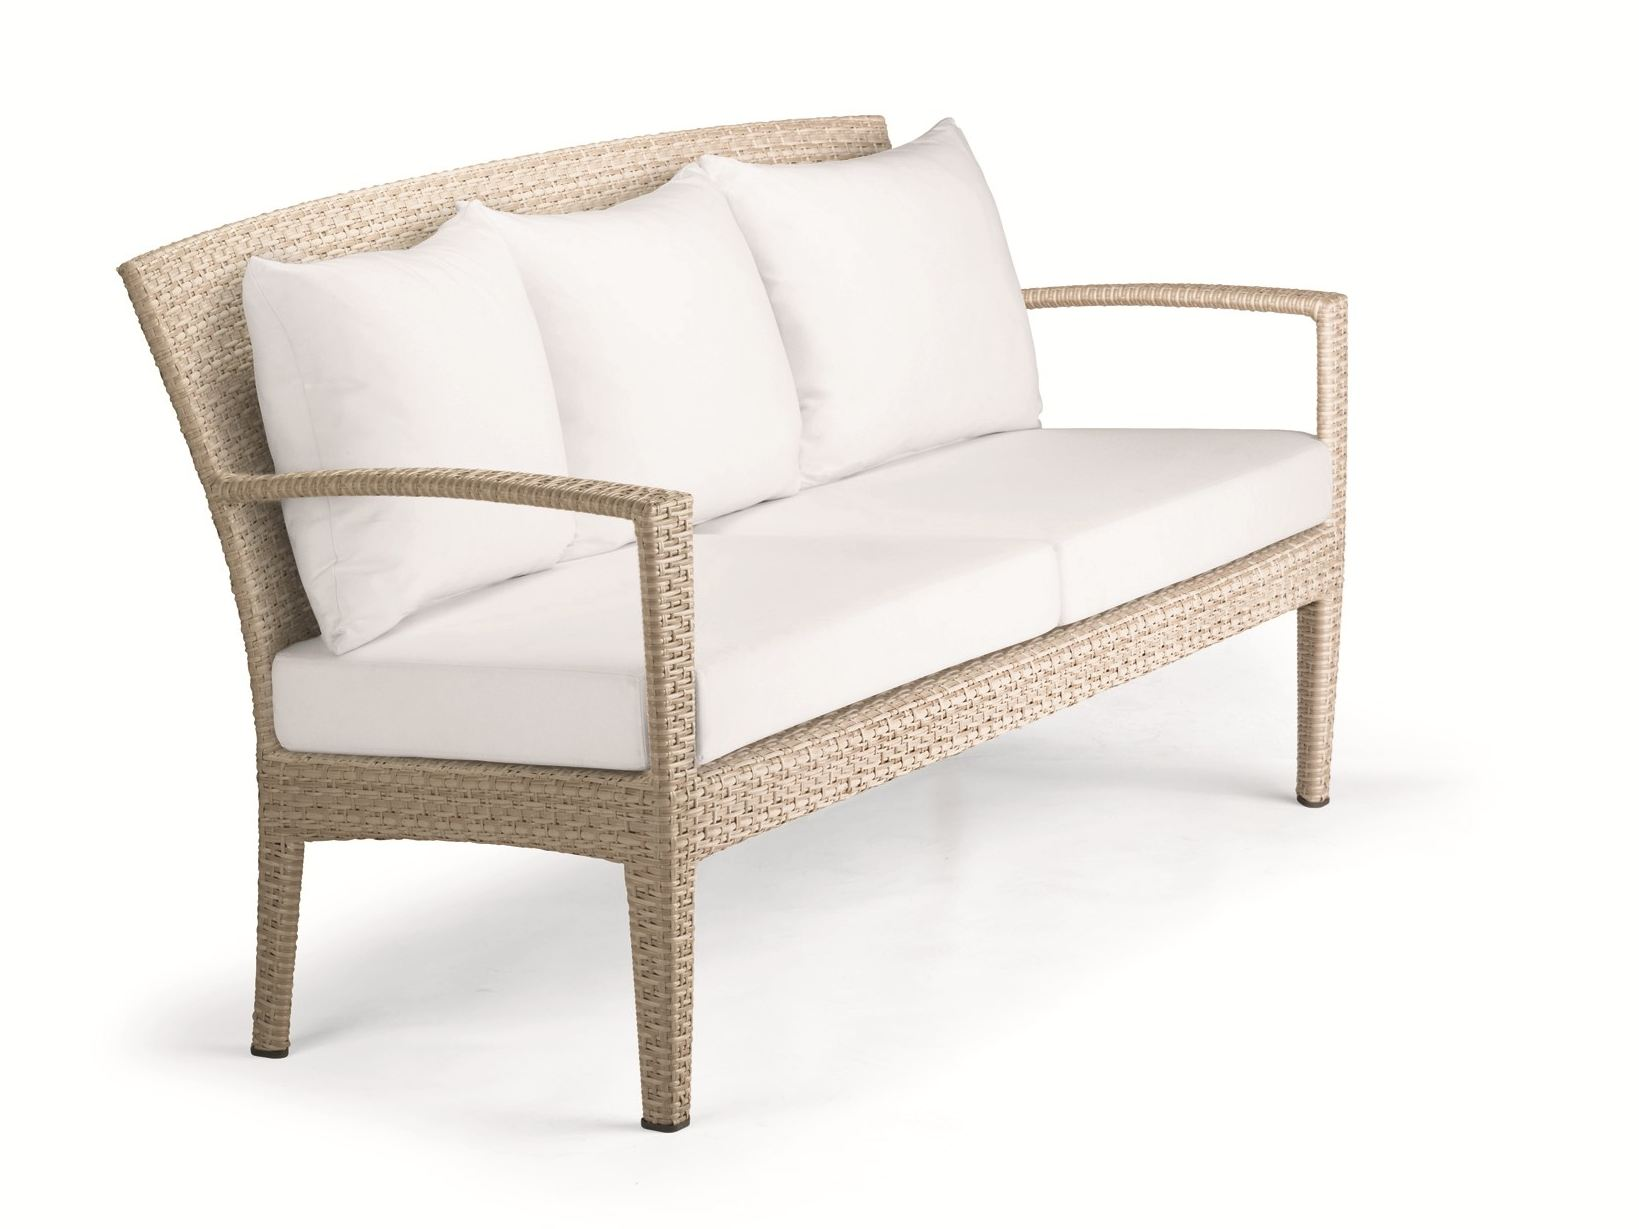 Dedon Furniture Prices List Barcelona Armchair By Dedon From Contemporary Home Tribeca 3